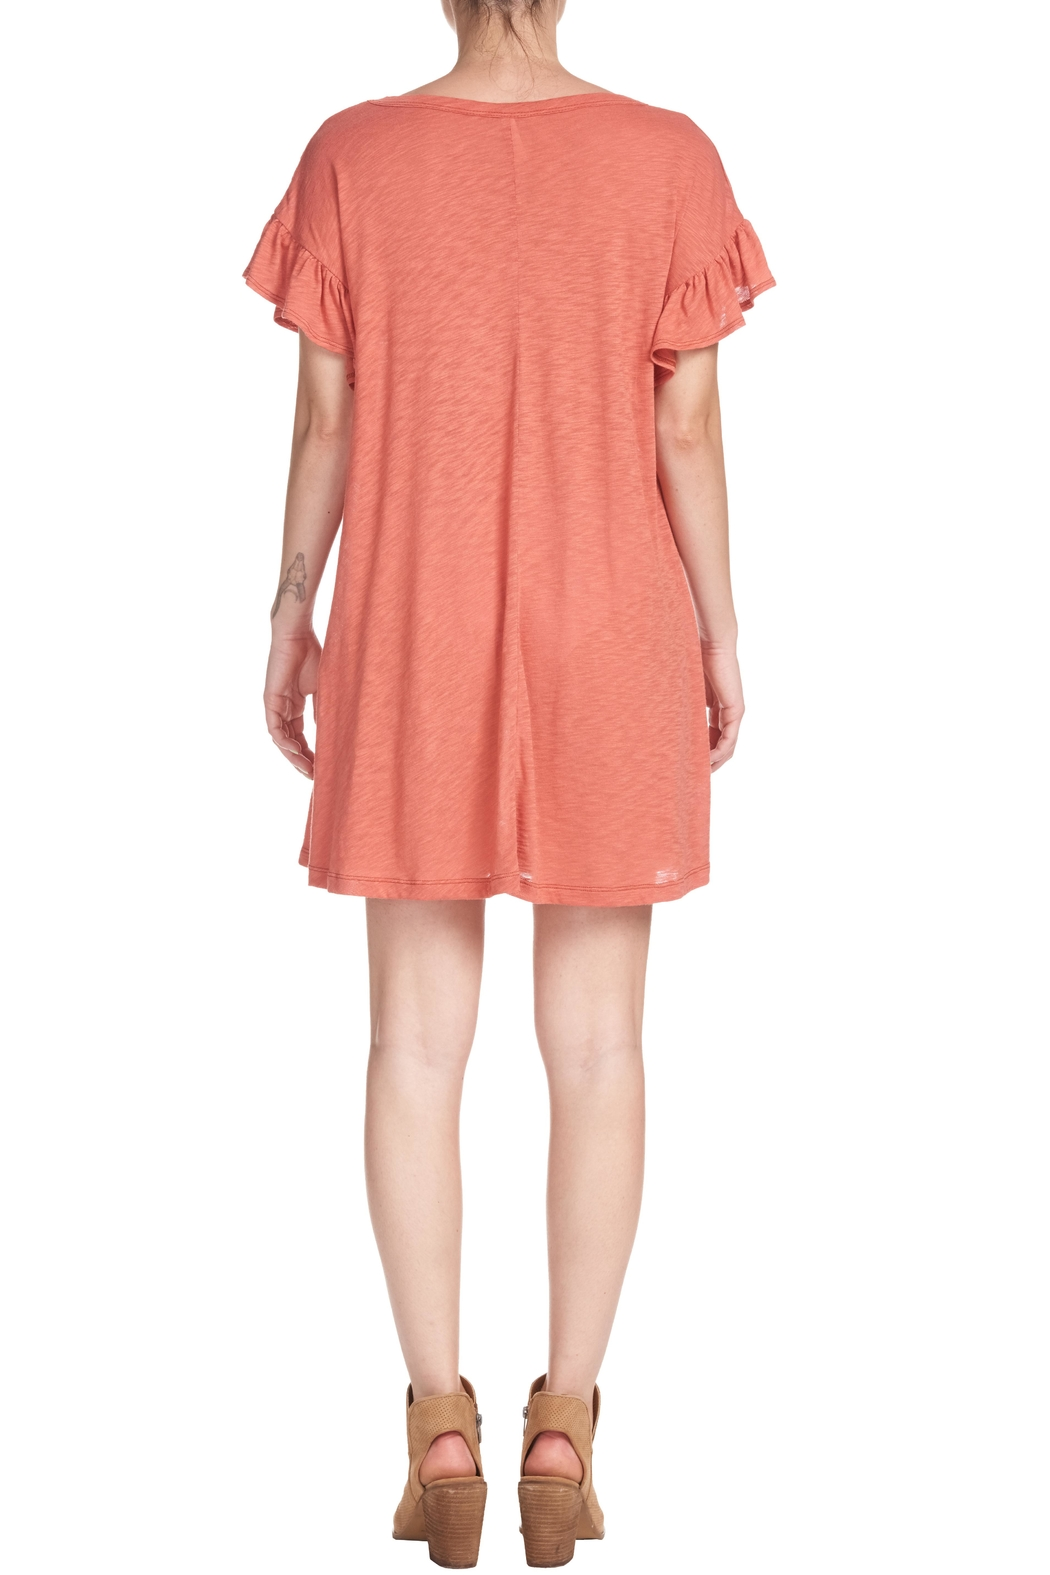 Elan Ruffle T-Shirt Dress - Front Full Image